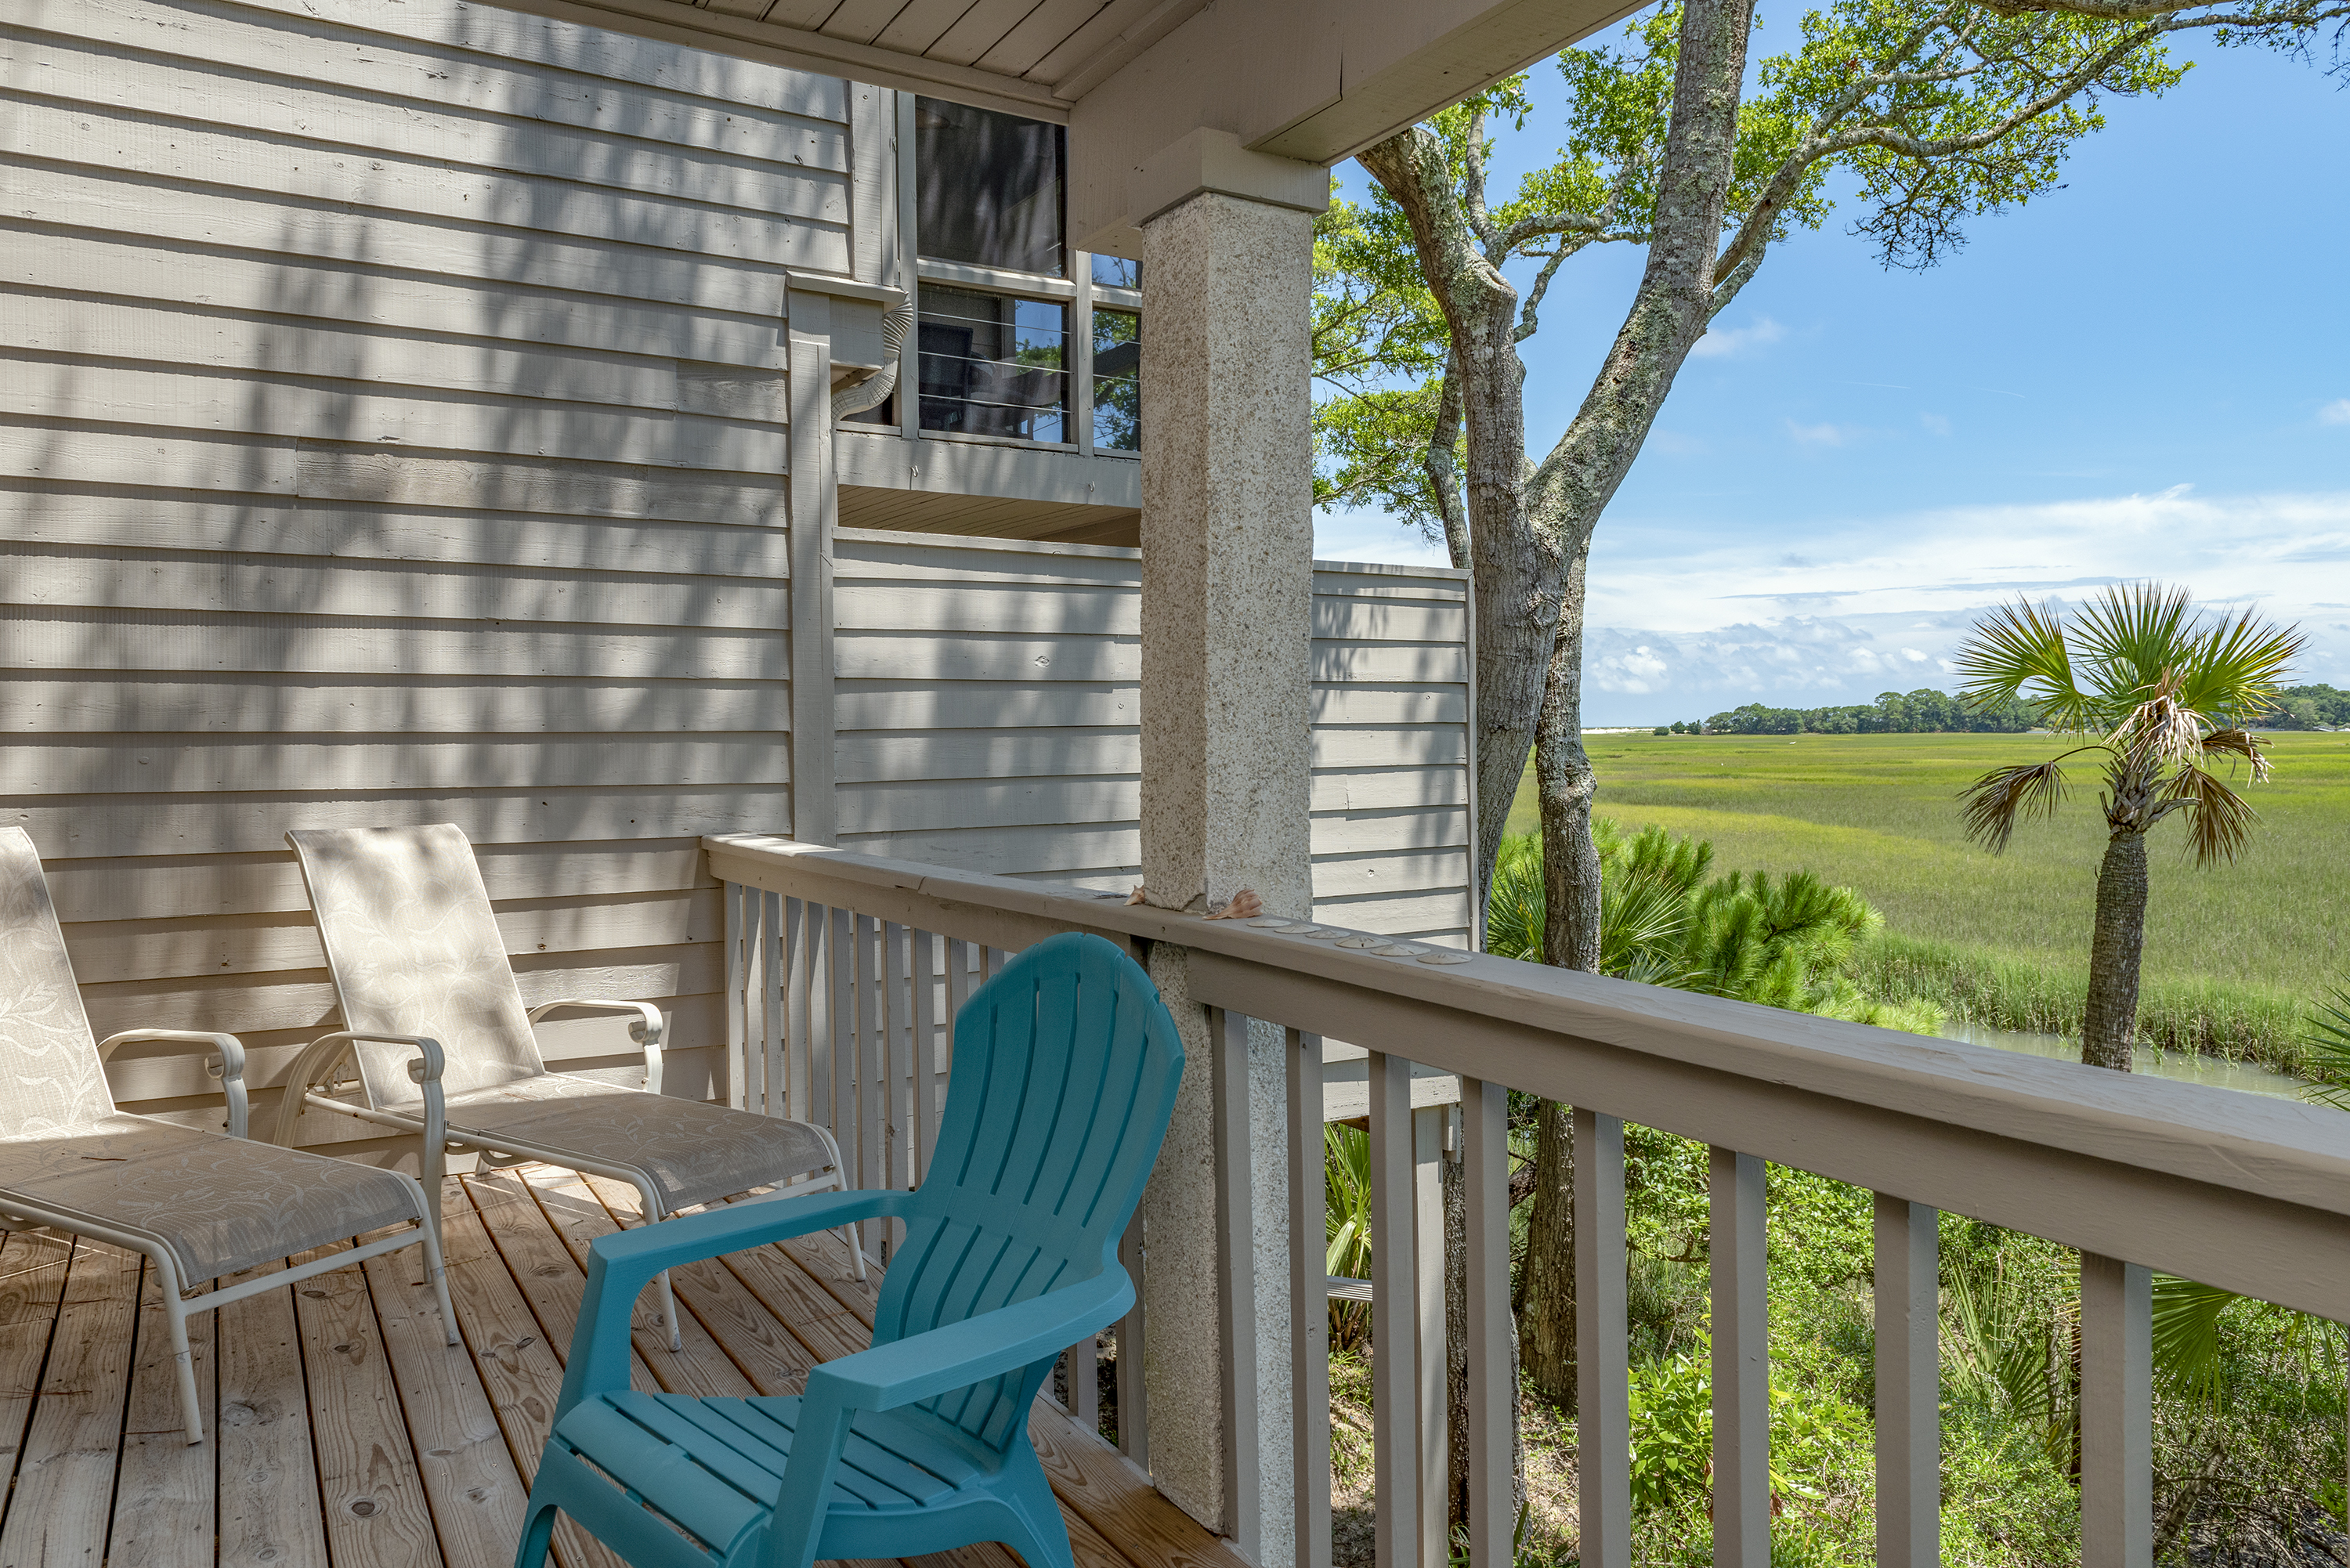 1211 Creekwatch is a beautiful villa with amazing views of Capn Sams Inlet and the ocean in the distance.